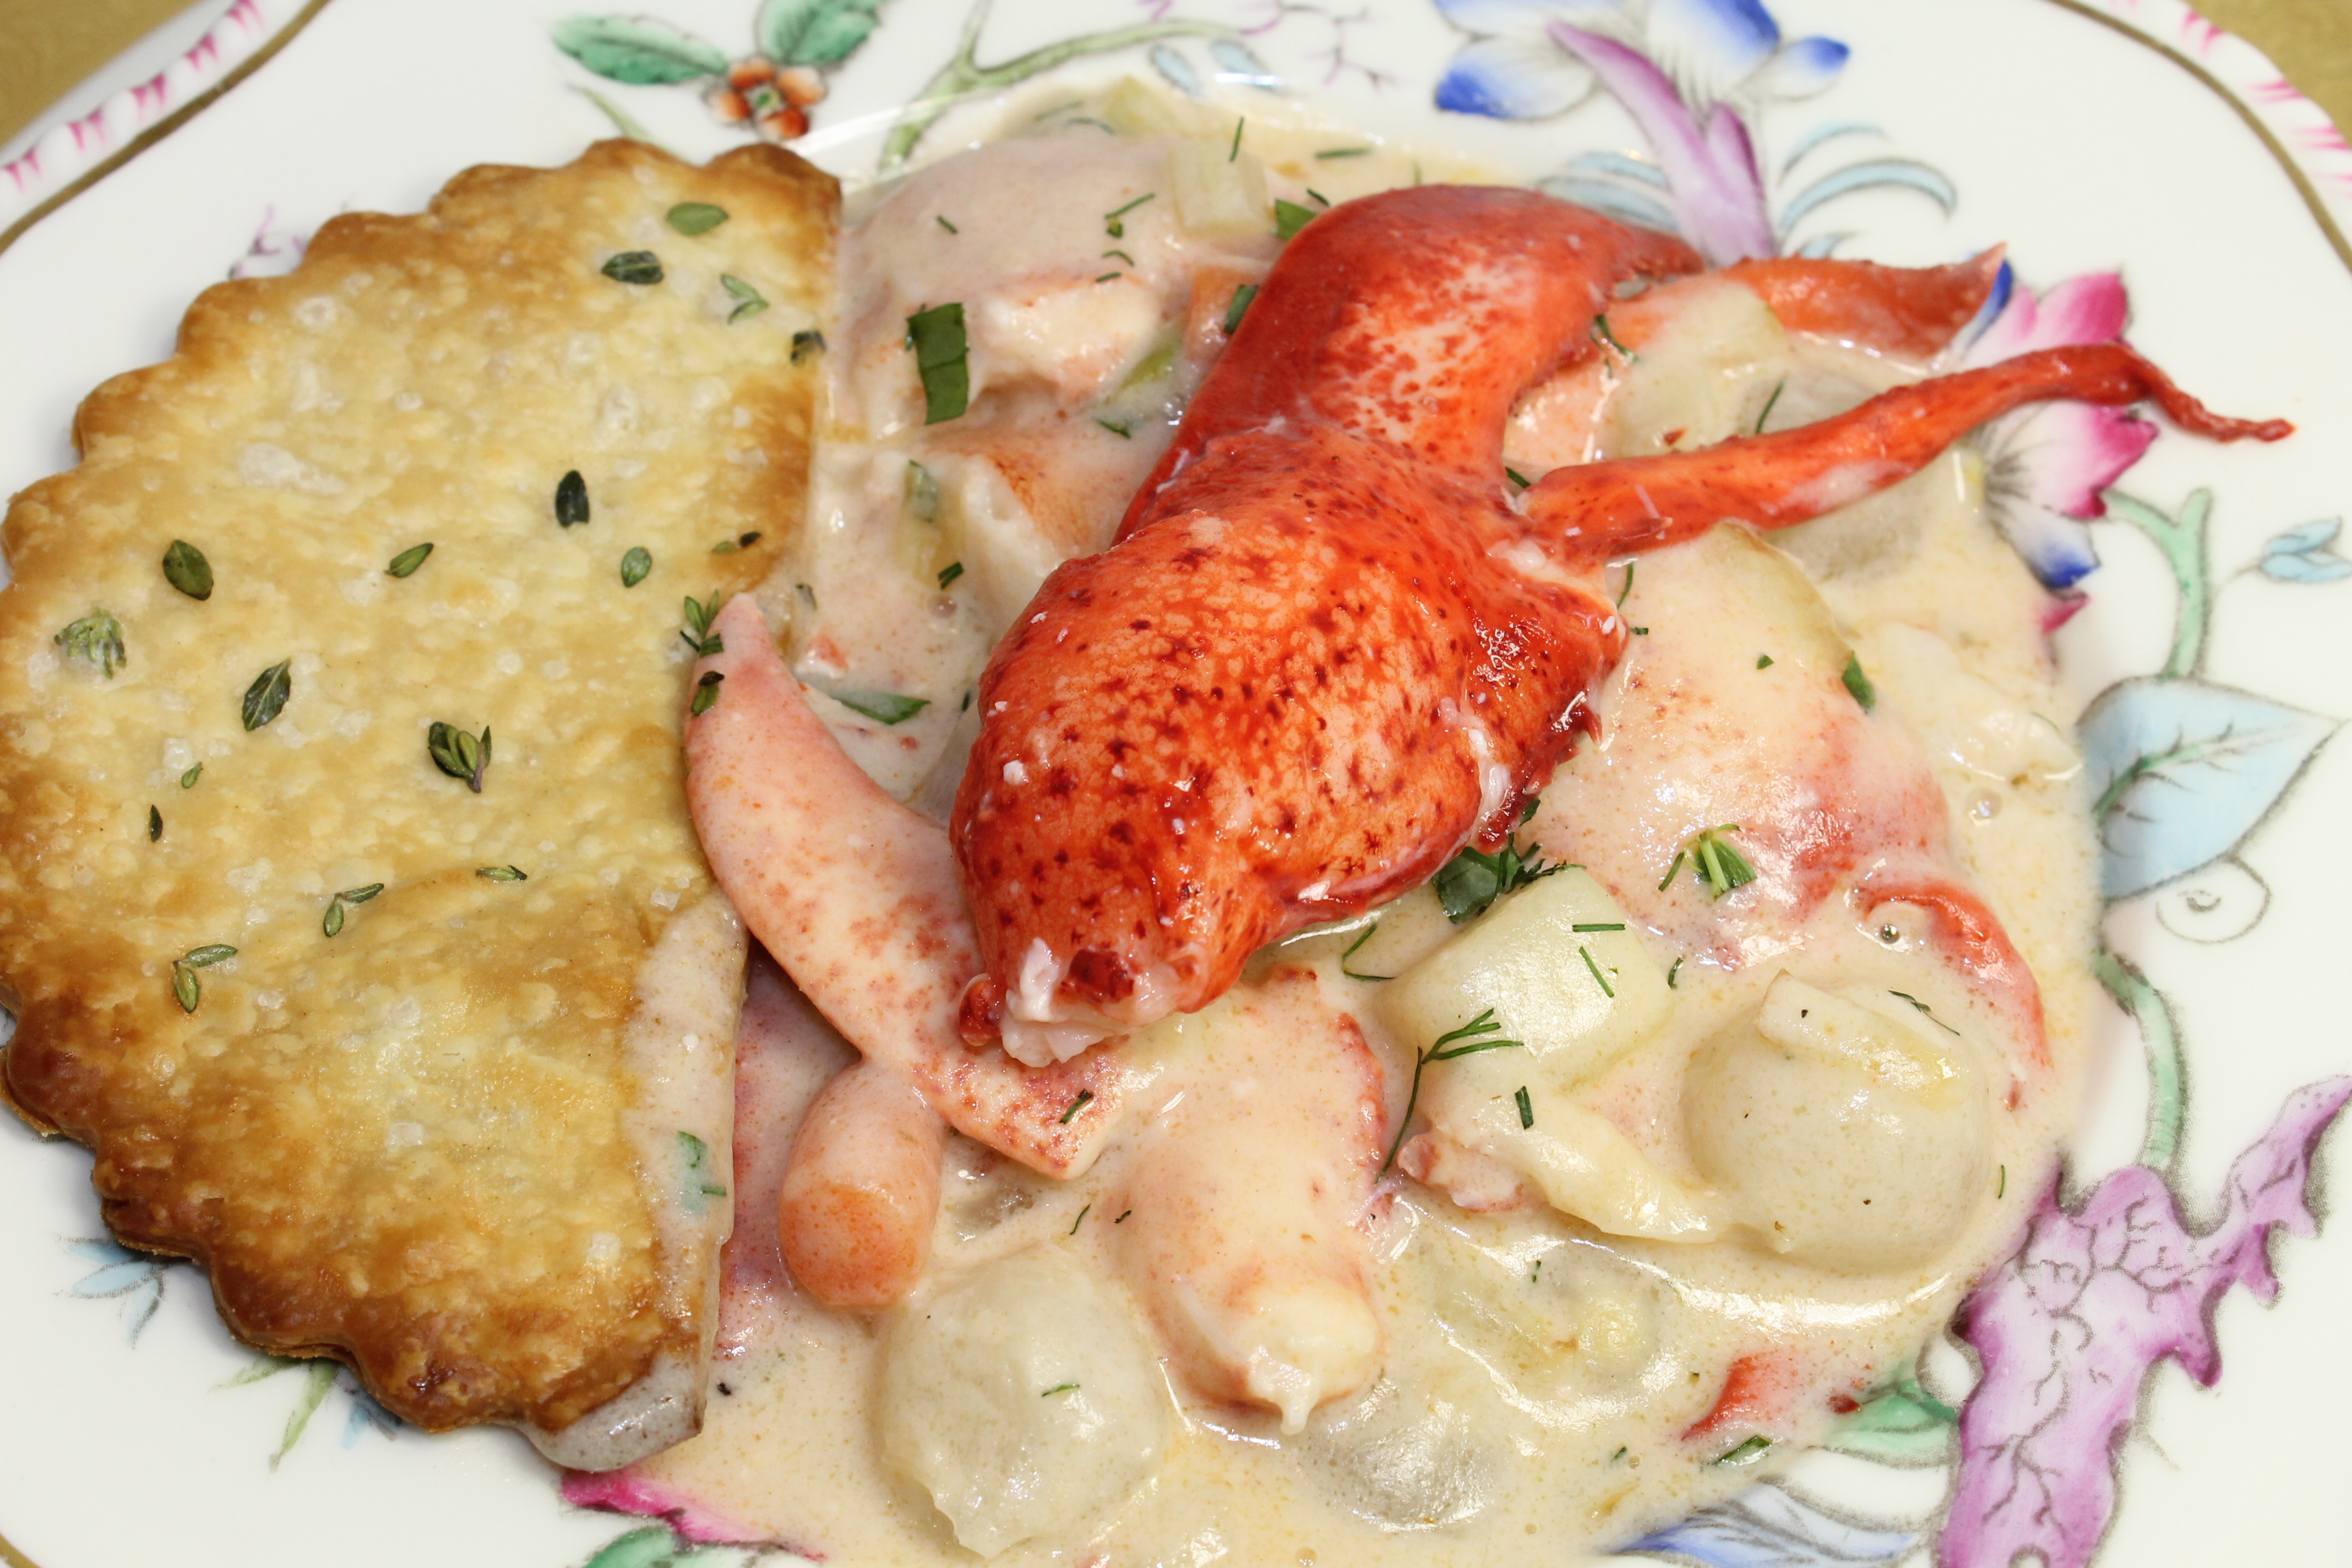 The New Year's Lobster Pot Pie